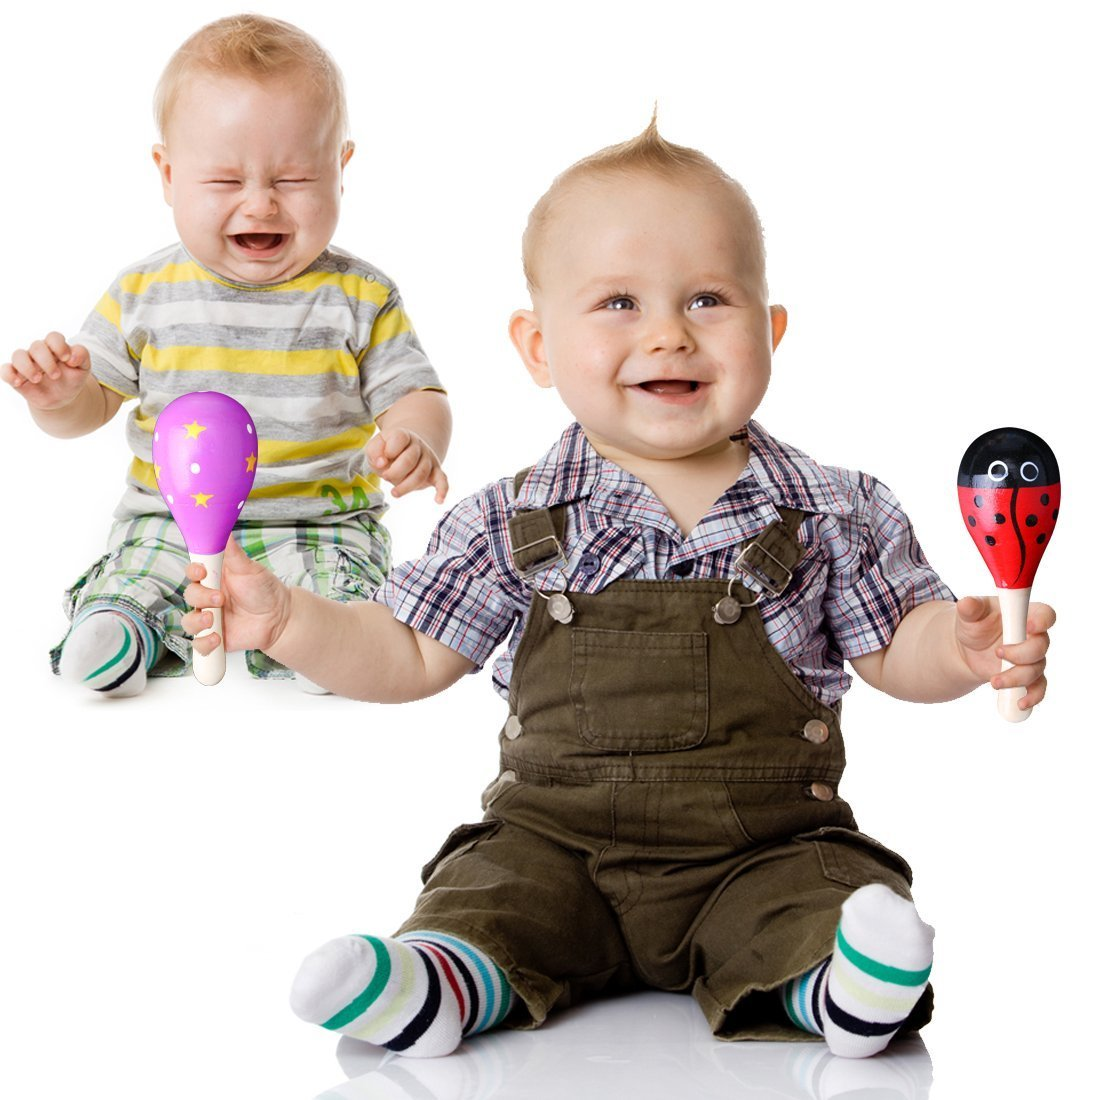 Kids Wooden Maracas,Rattle Shakers Musical Educational Toys,Random Color and Pattern,Set of 4,Mini